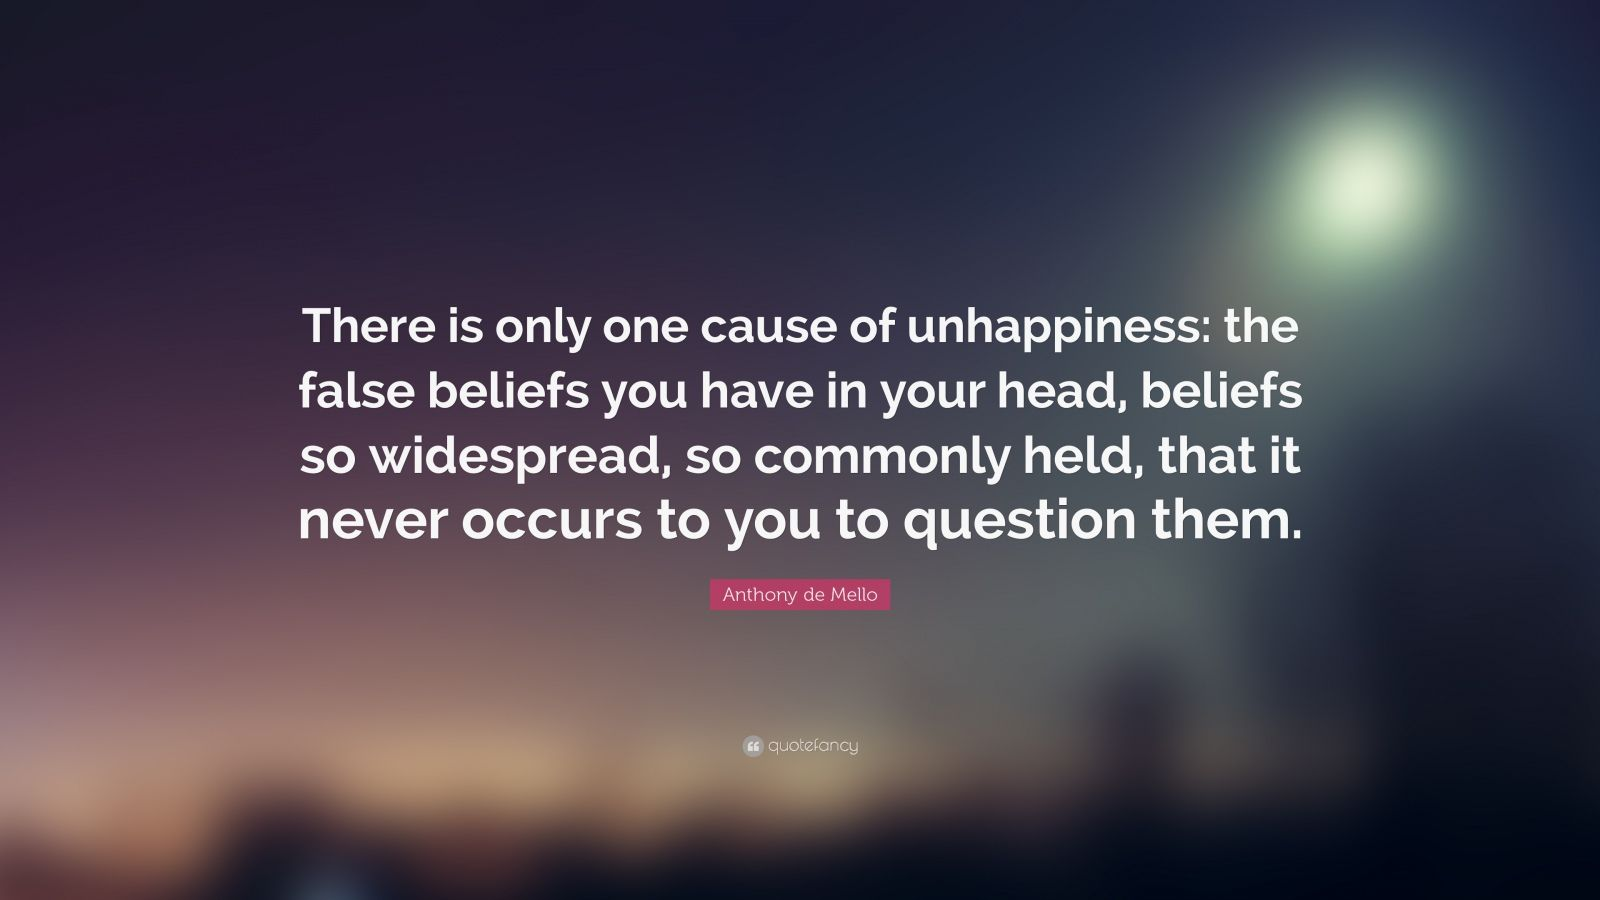 """Anthony de Mello Quote: """"There is only one cause of unhappiness: the false beliefs you have in your head, beliefs so widespread, so commonly held, that it never occurs to you to question them."""""""